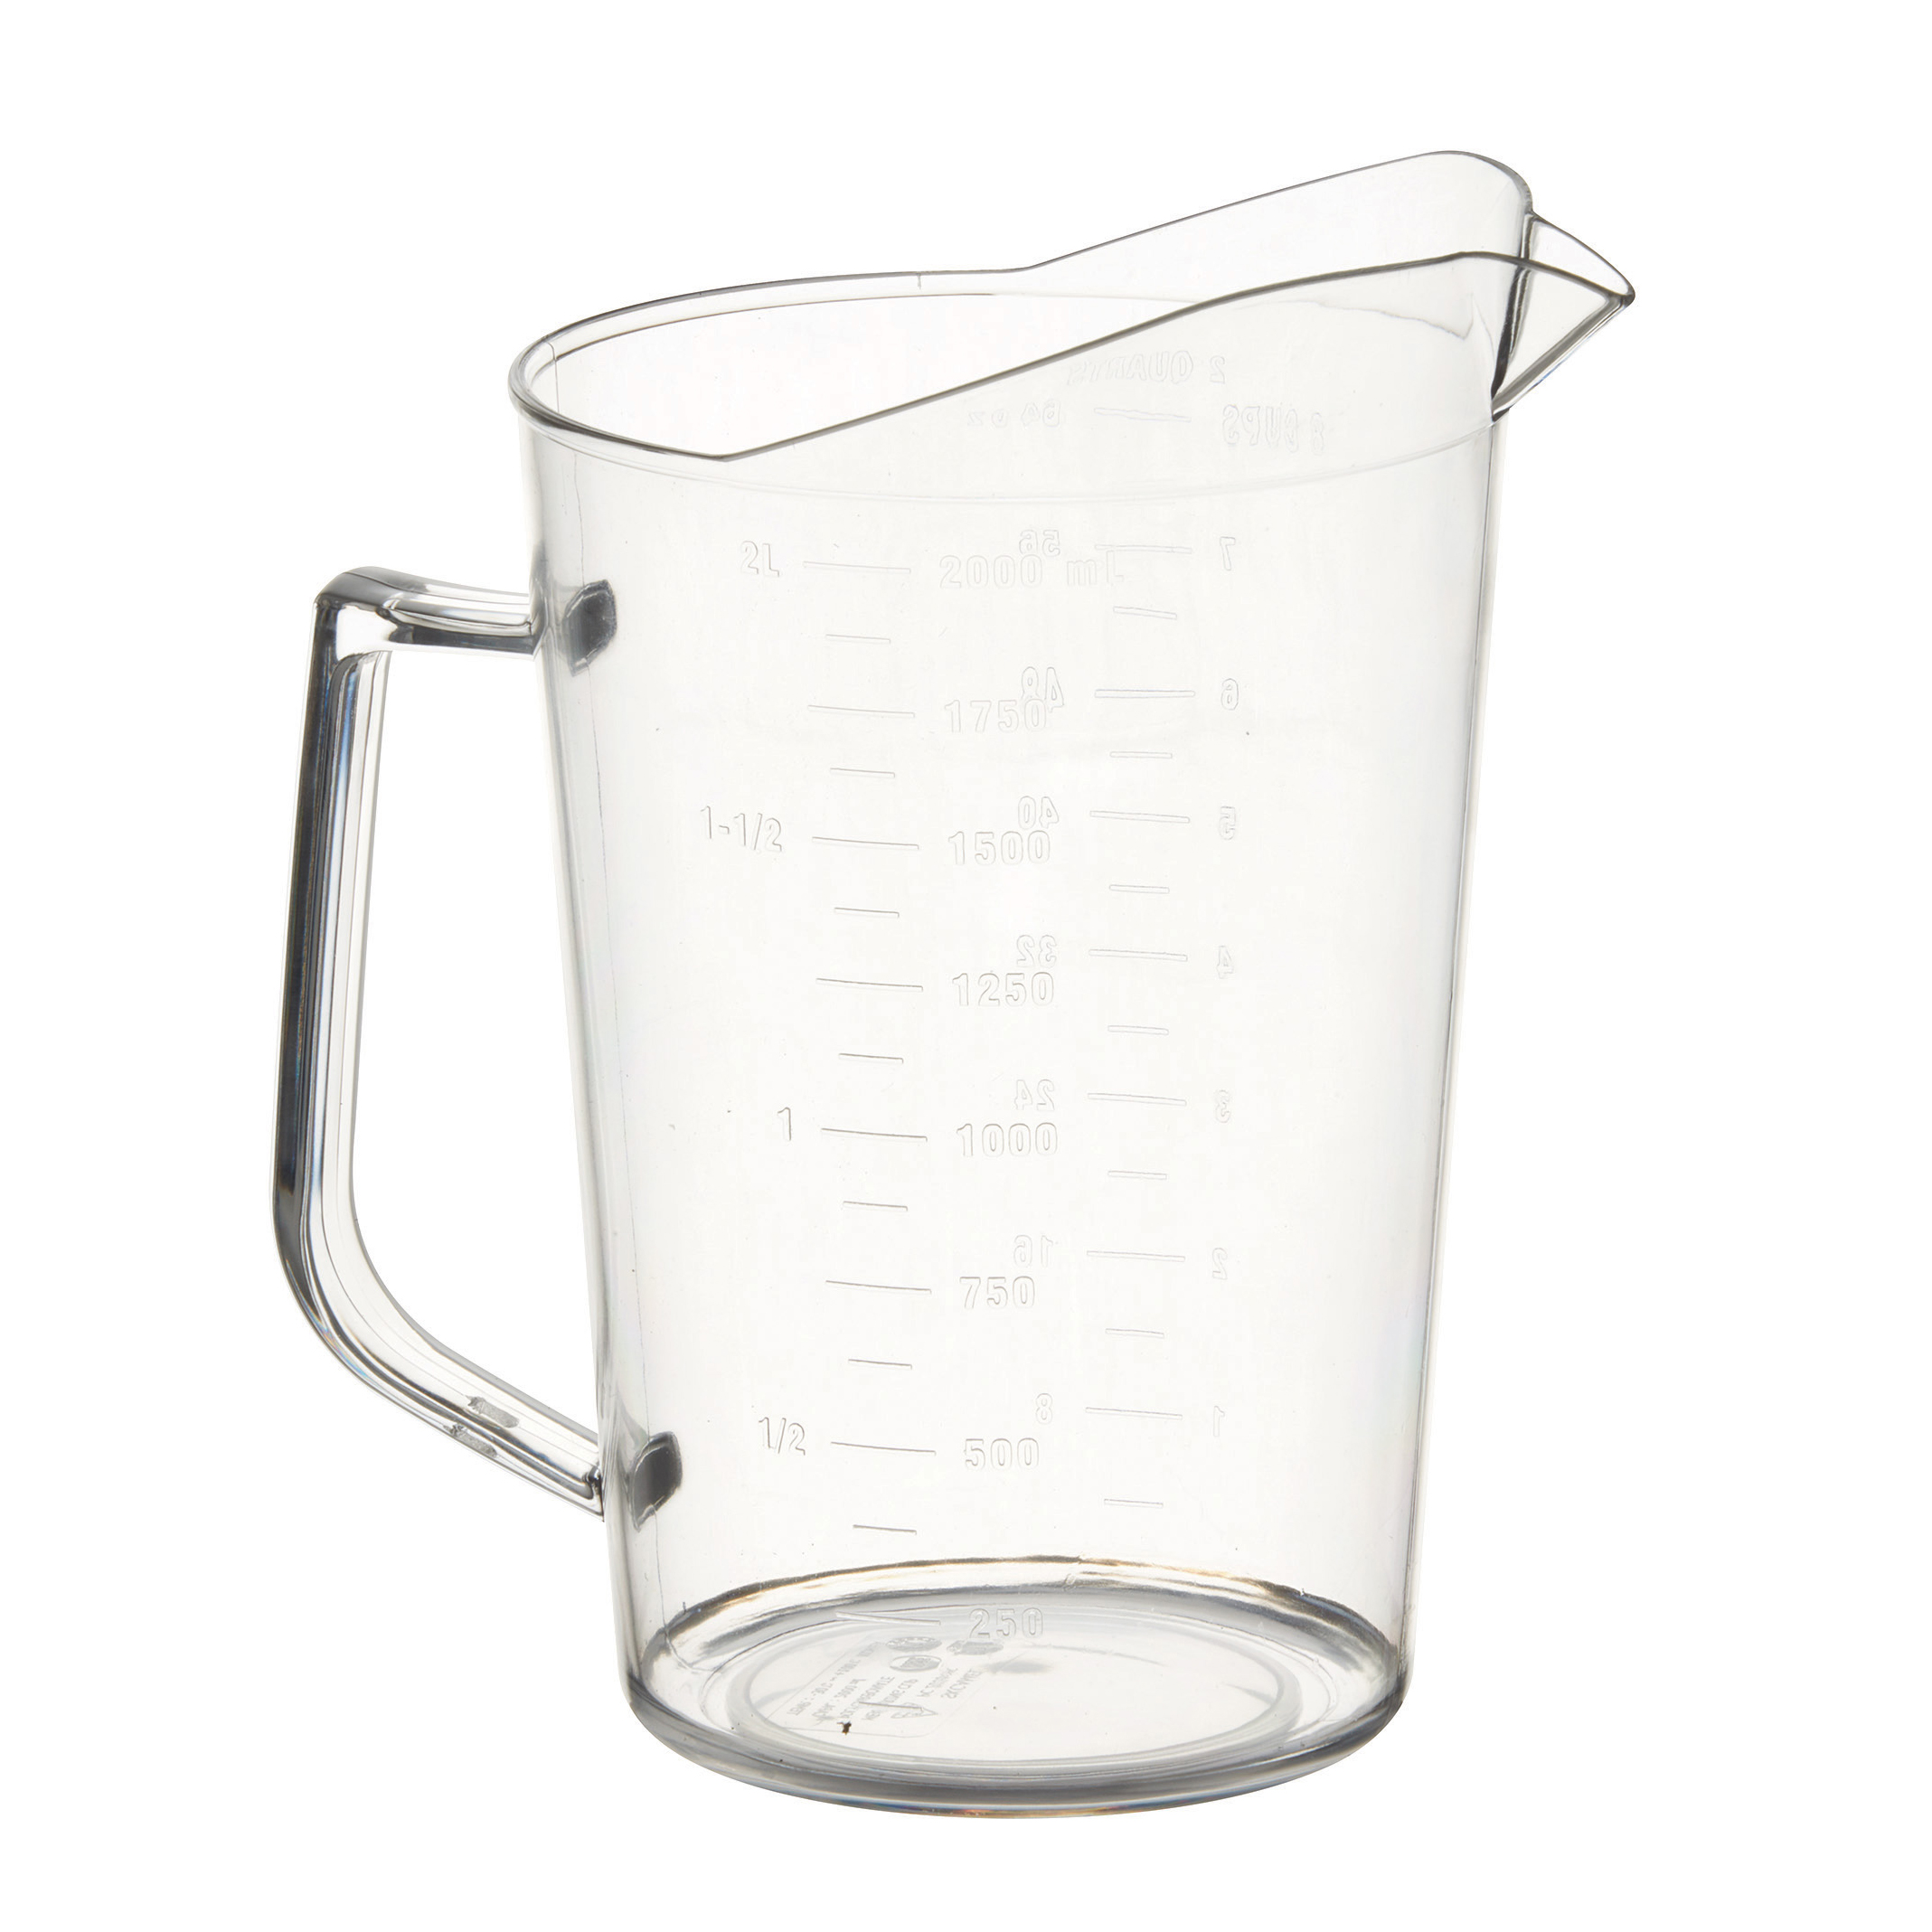 Winco PMU-200 measuring cups